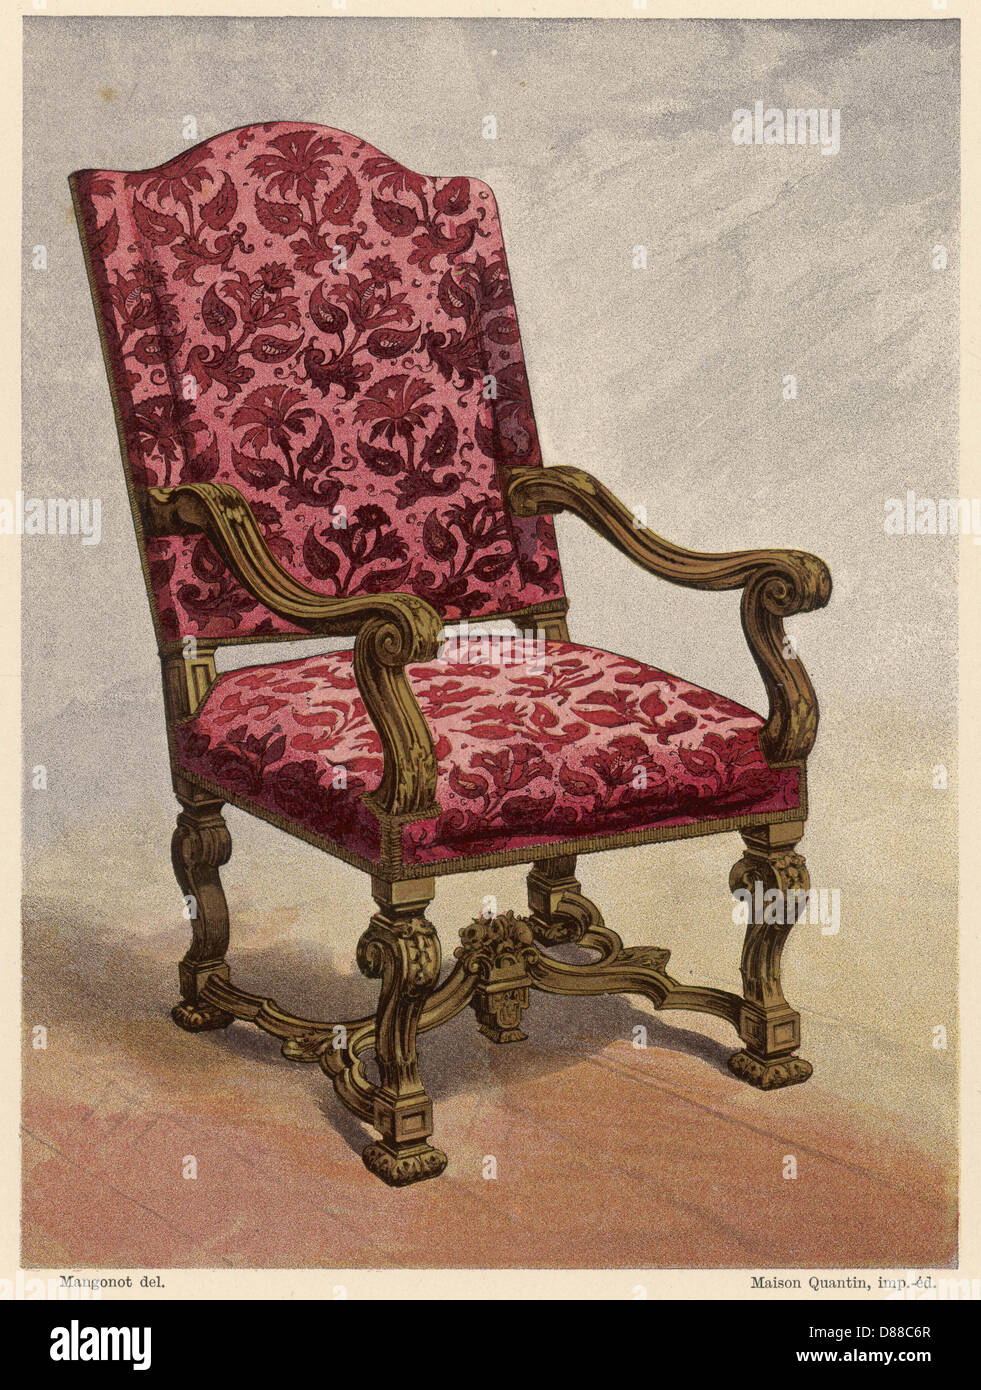 French C17 Armchair Stock Photo